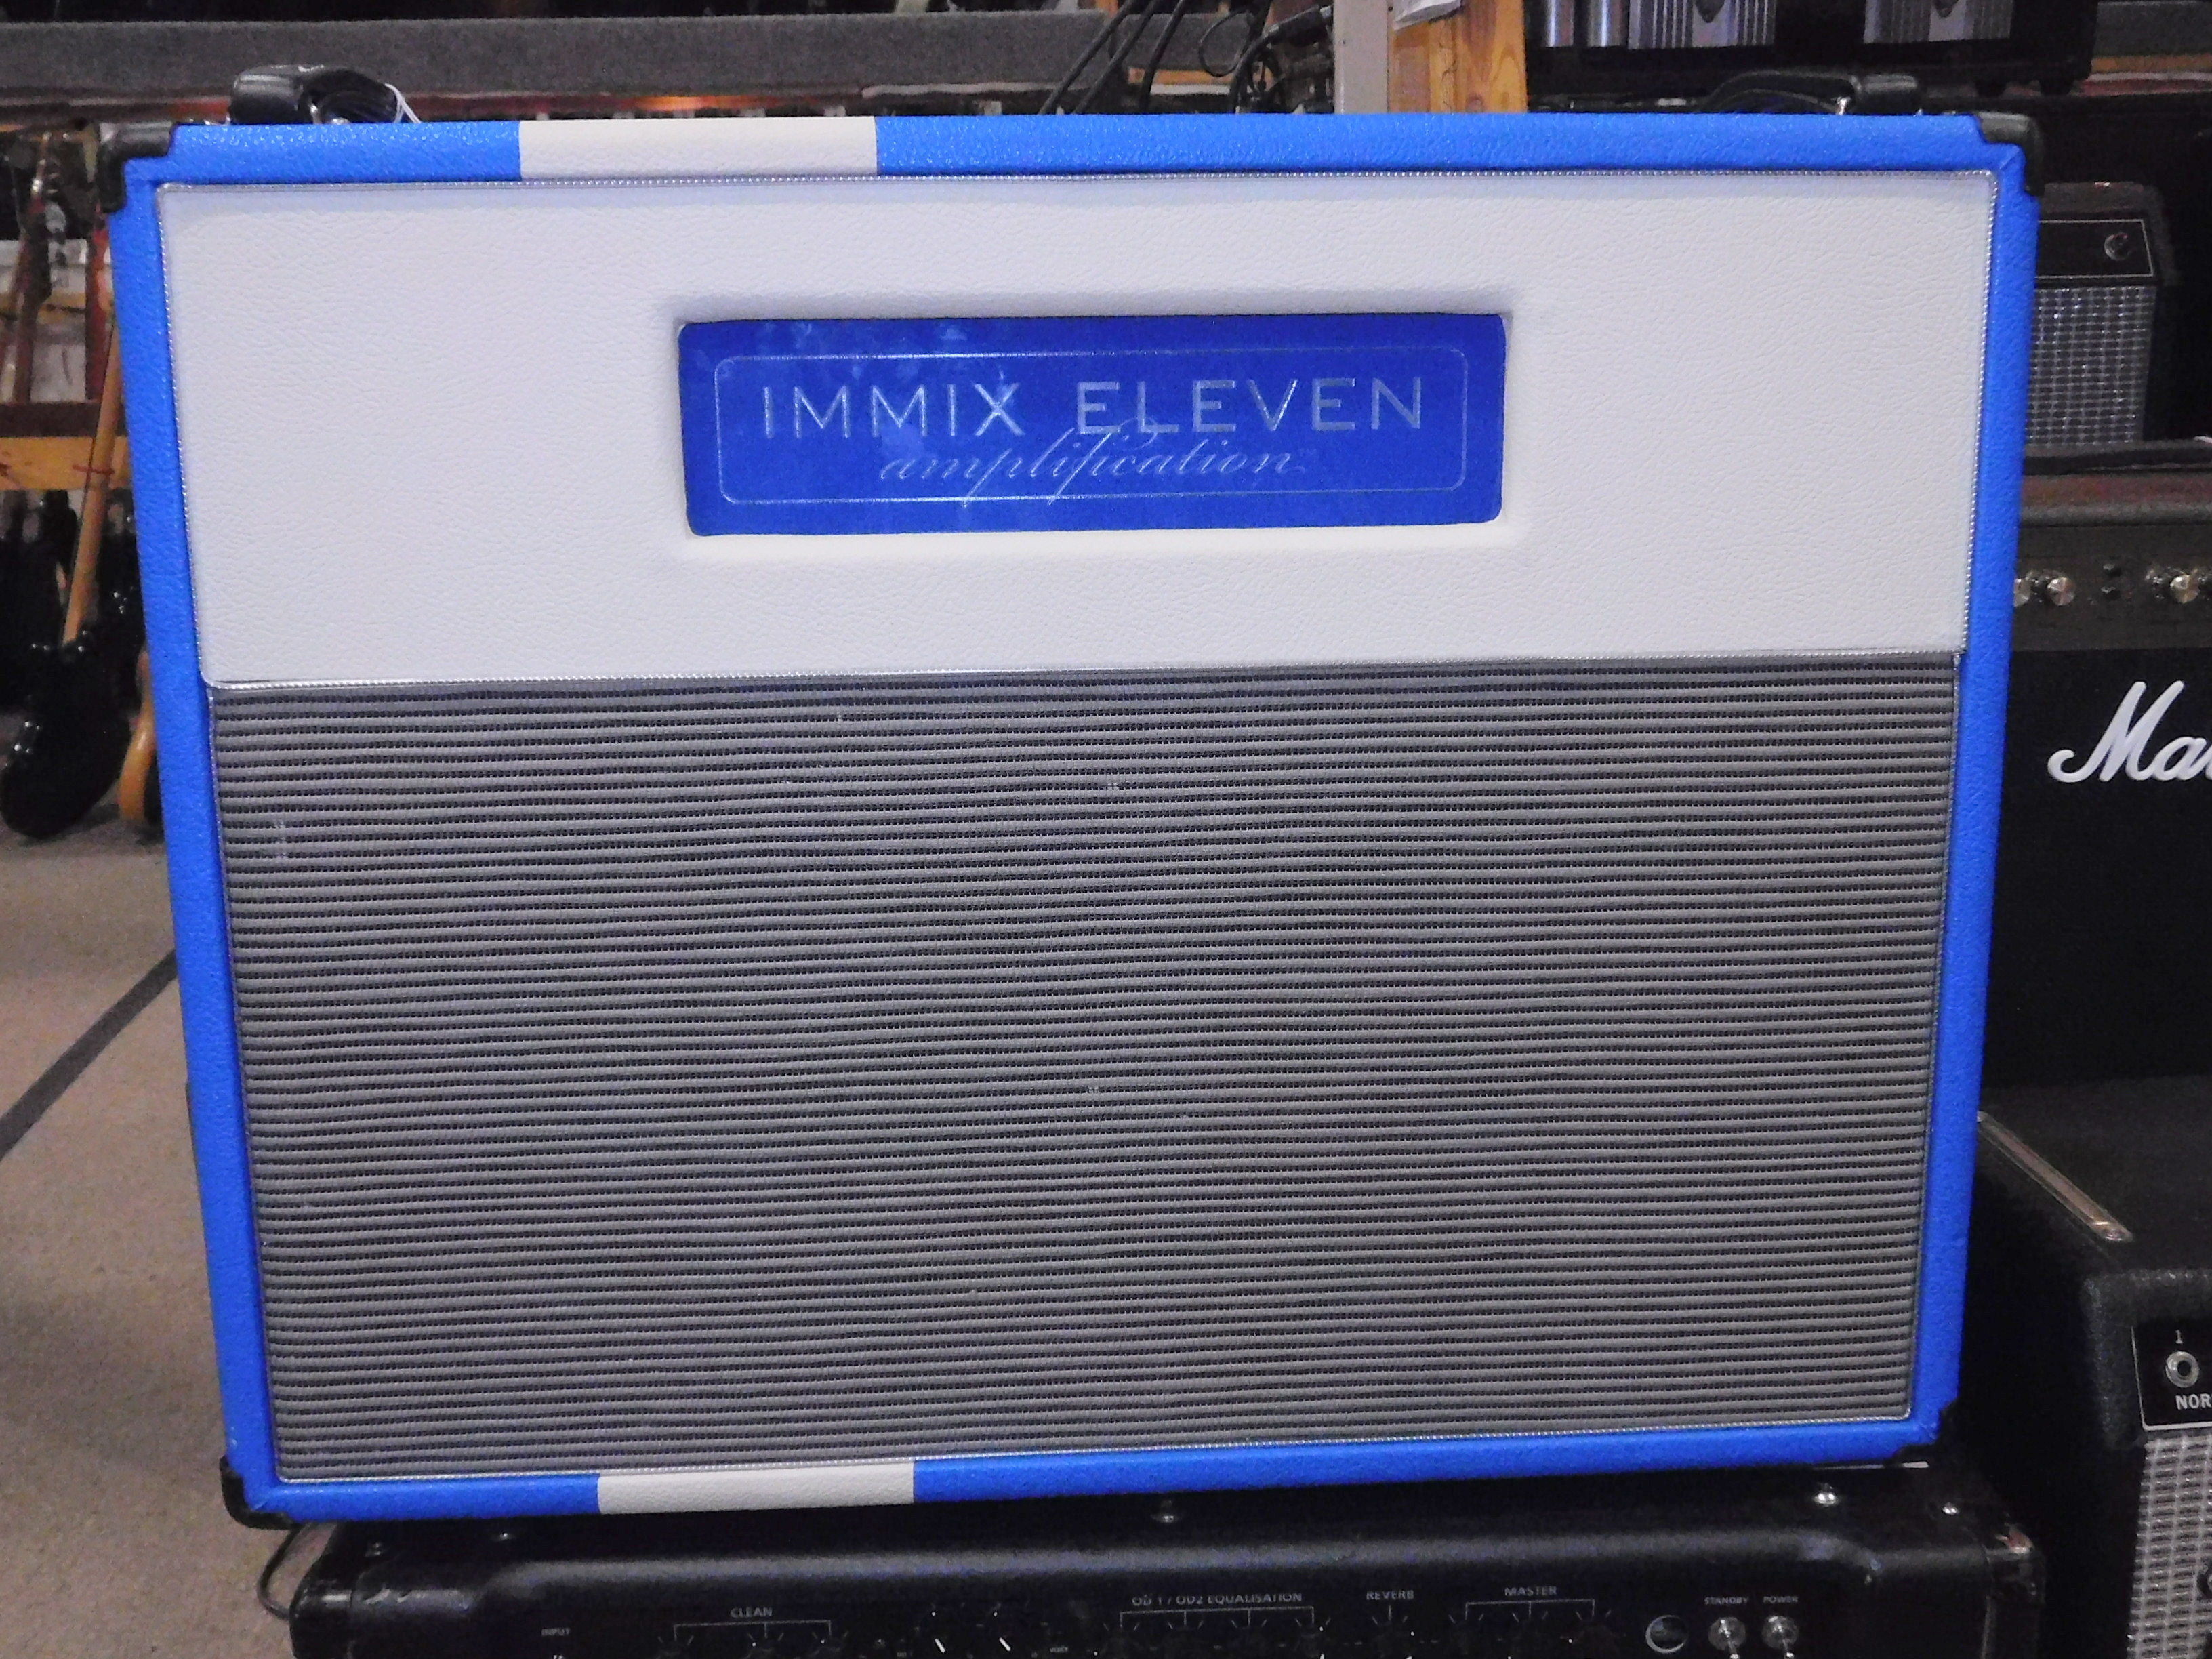 IMMIX ELEVEN V SERIES 30 GUITAR AMPLIFIER COMBO - GREAT CONDITION